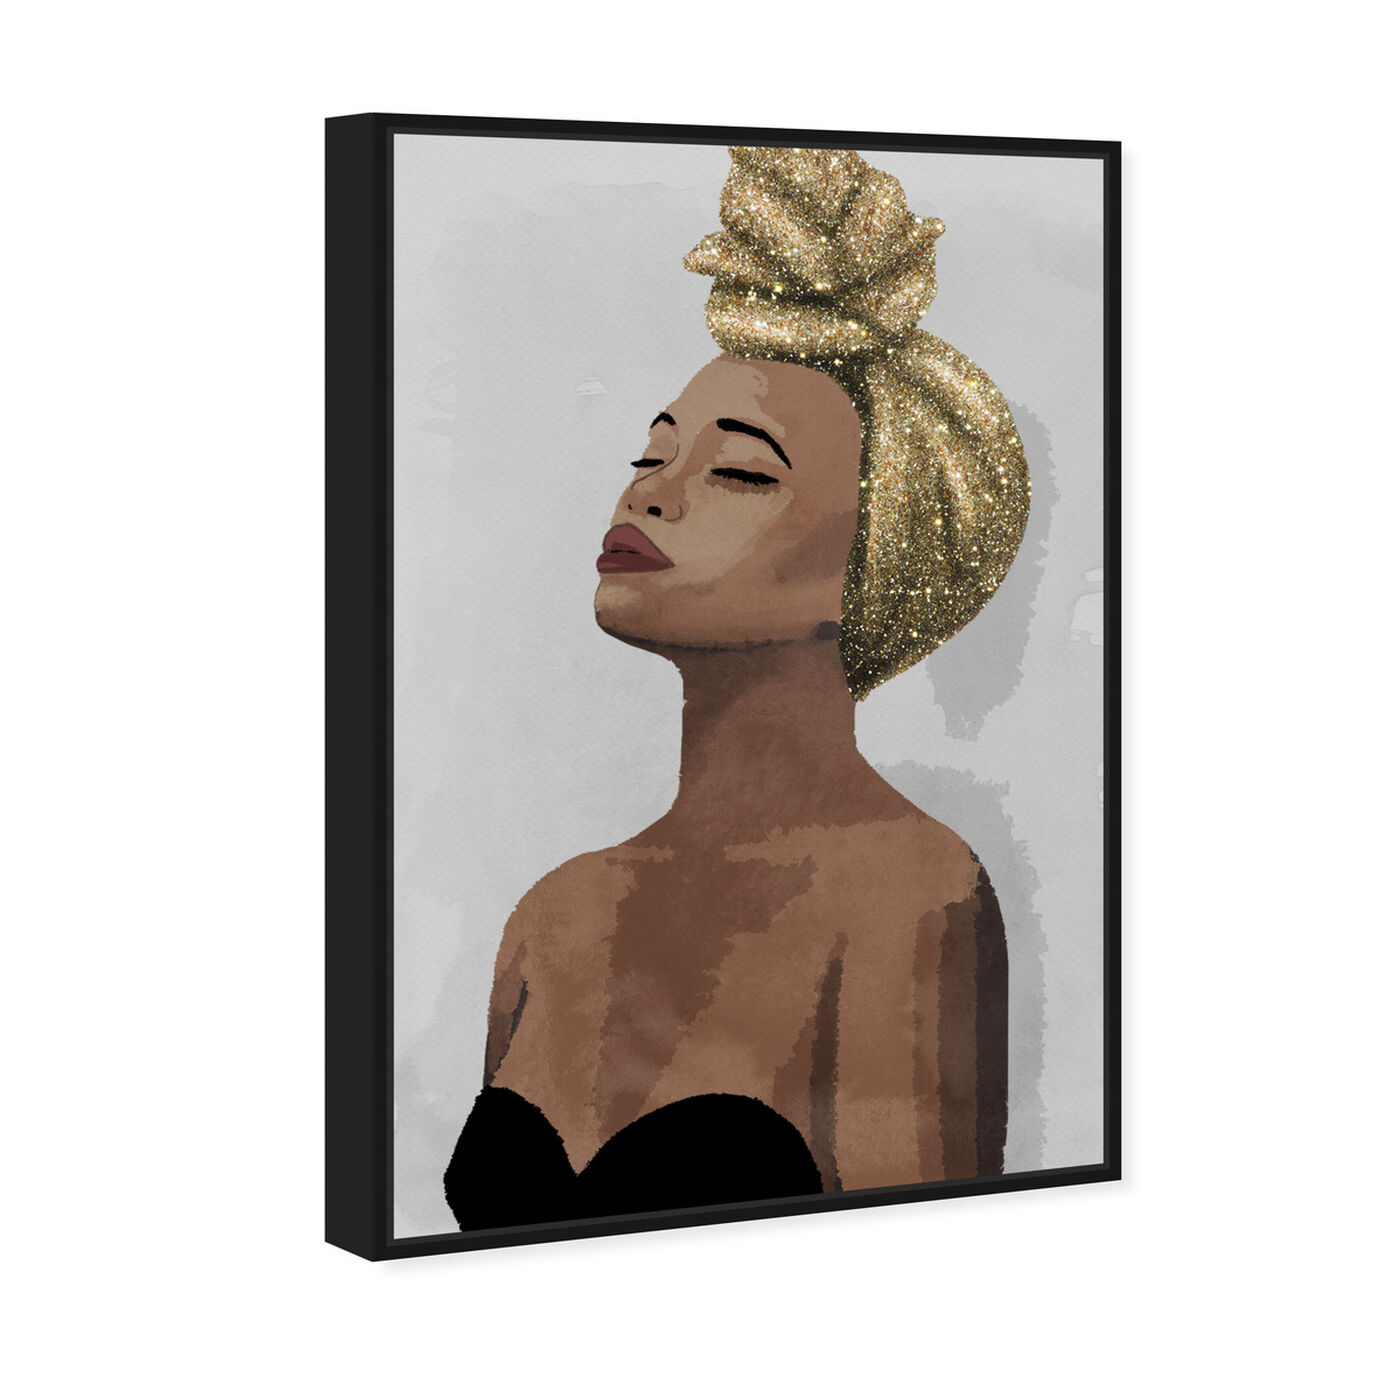 Angled view of Golden Spirit featuring fashion and glam and portraits art.